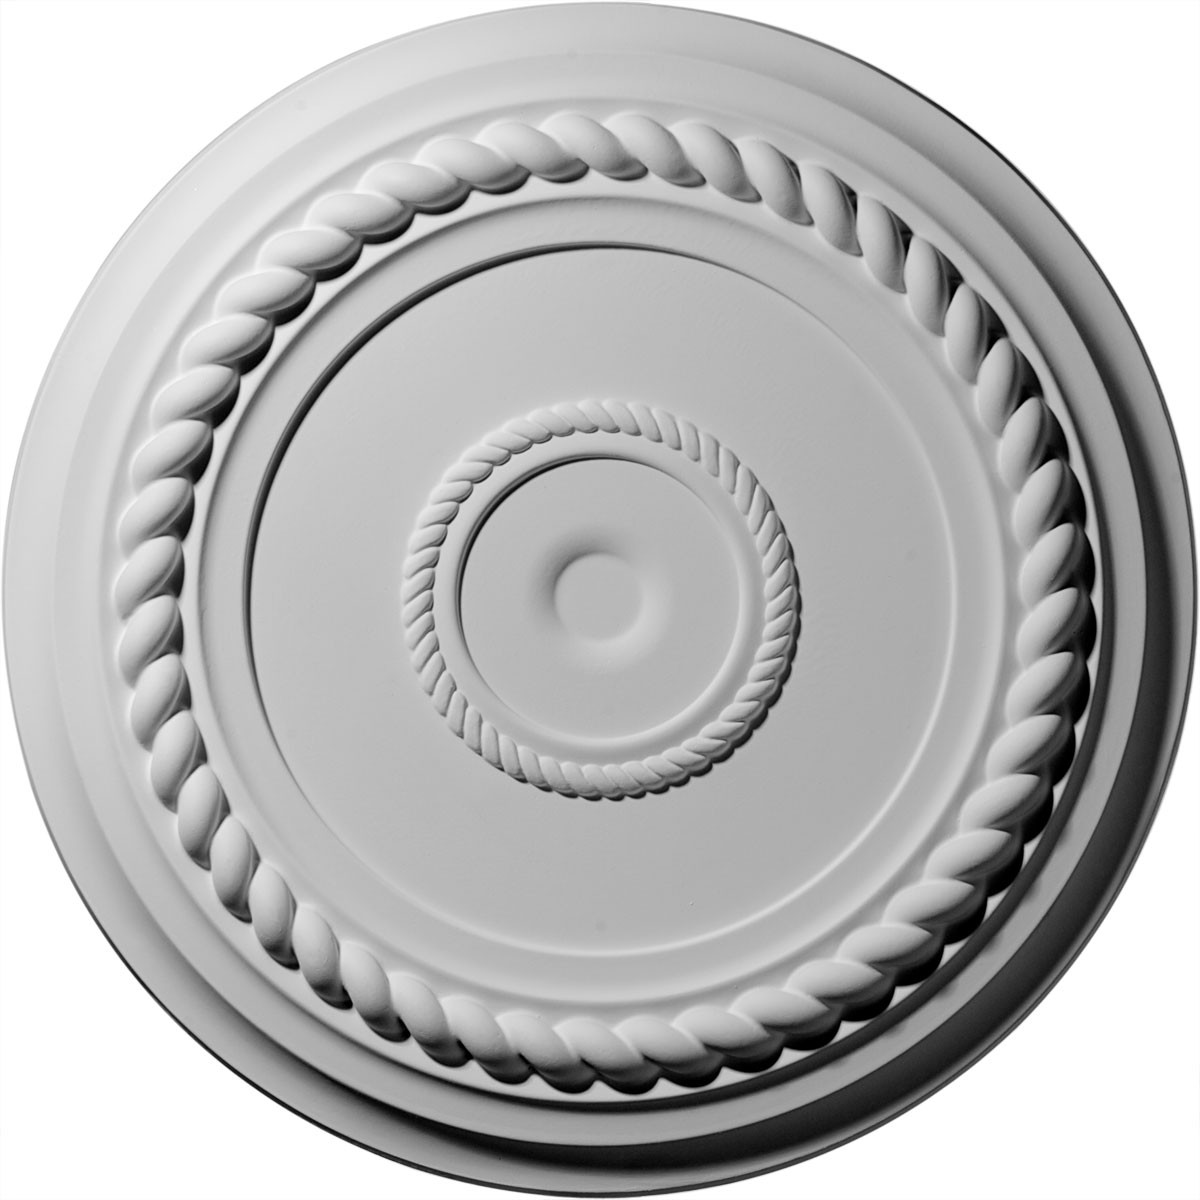 """EM-CM18AL - 19 5/8""""OD x 1 1/2""""P Alexandria Rope Ceiling Medallion (Fits Canopies up to 4 5/8"""")"""